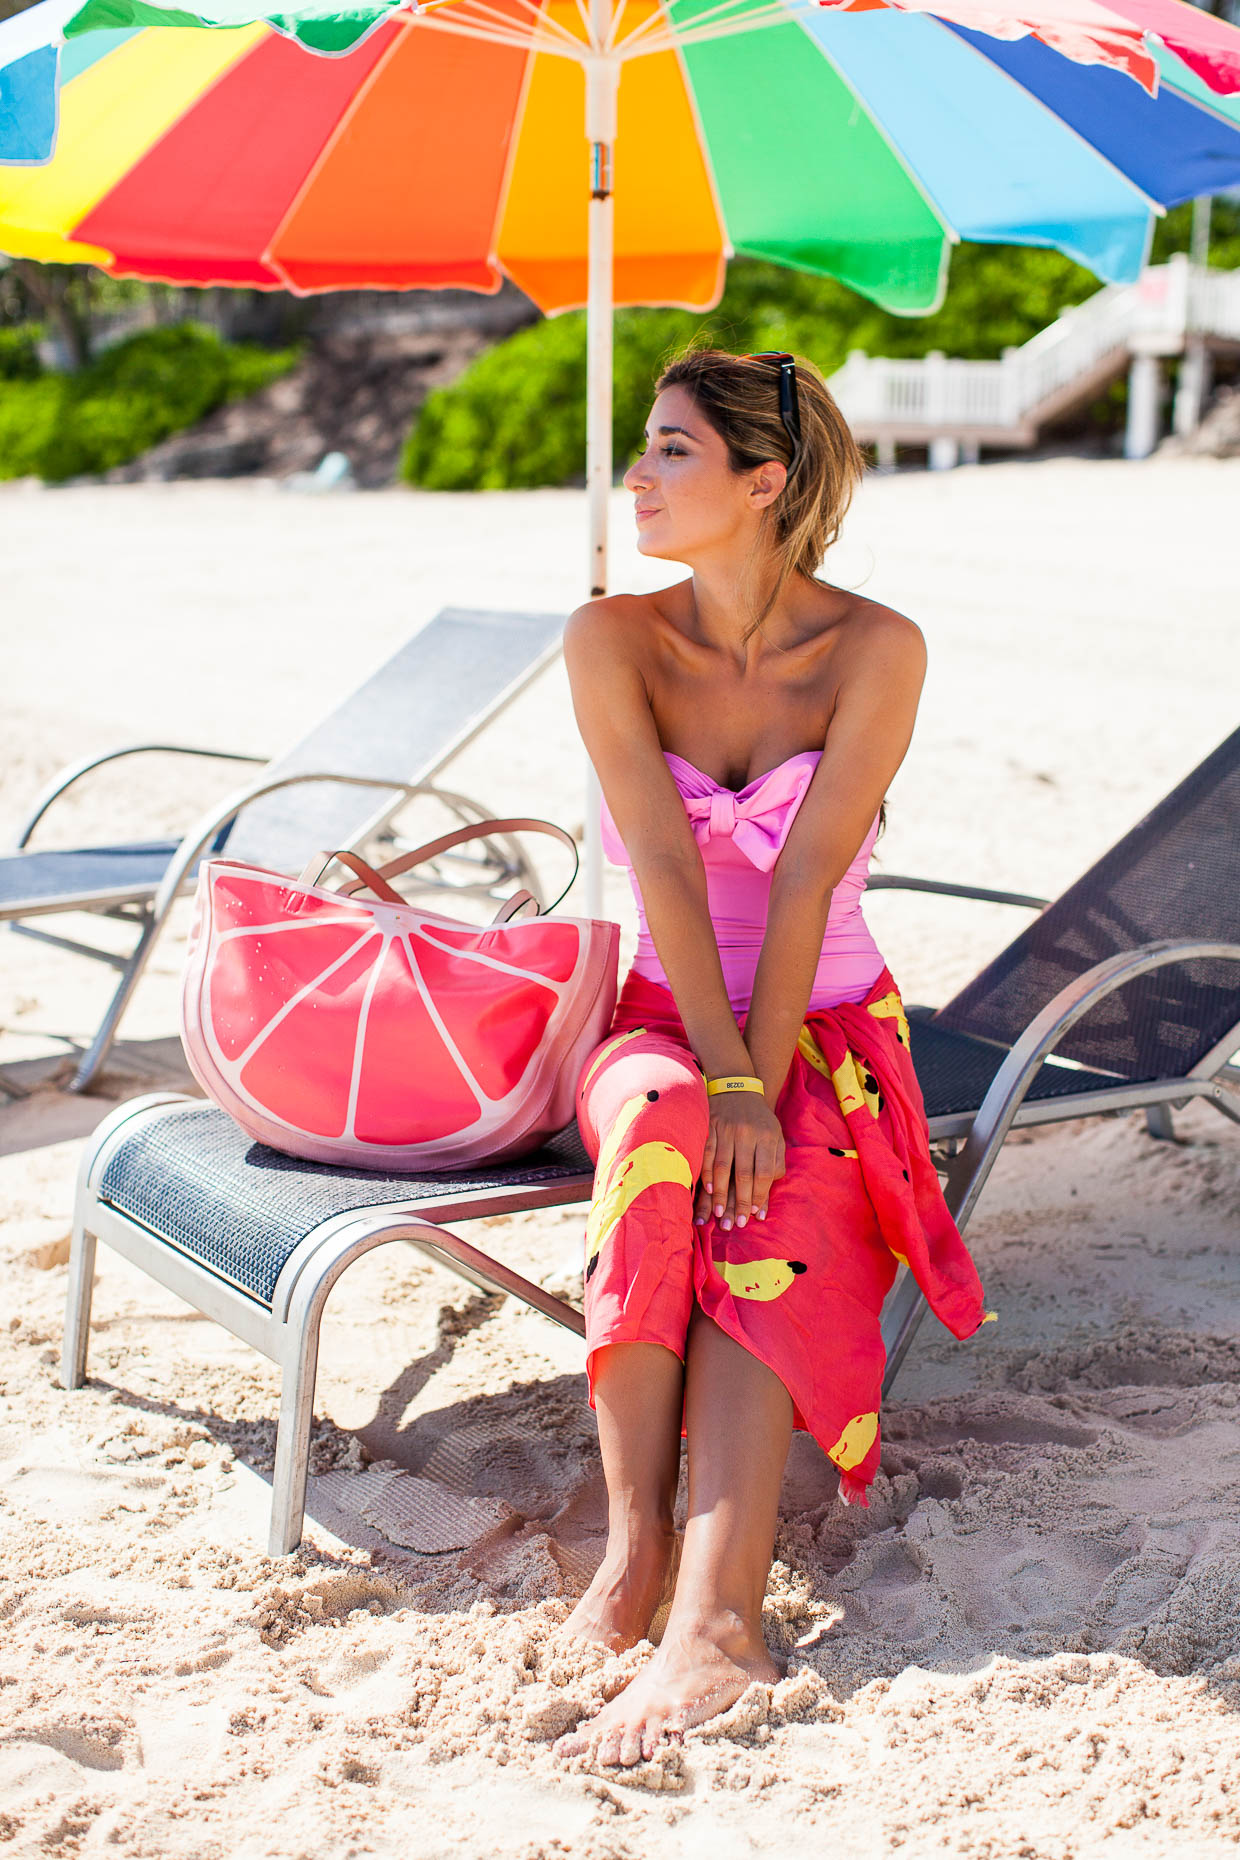 Fashion Blogger The Darling Detail is wearing the Kate Spade Georgica Beach Bandeau Maillot with the That's Bananas Oblong Scarf, and is sporting the Flights of Fancy Grapefruit Tote and Sharlotte Sunglasses.